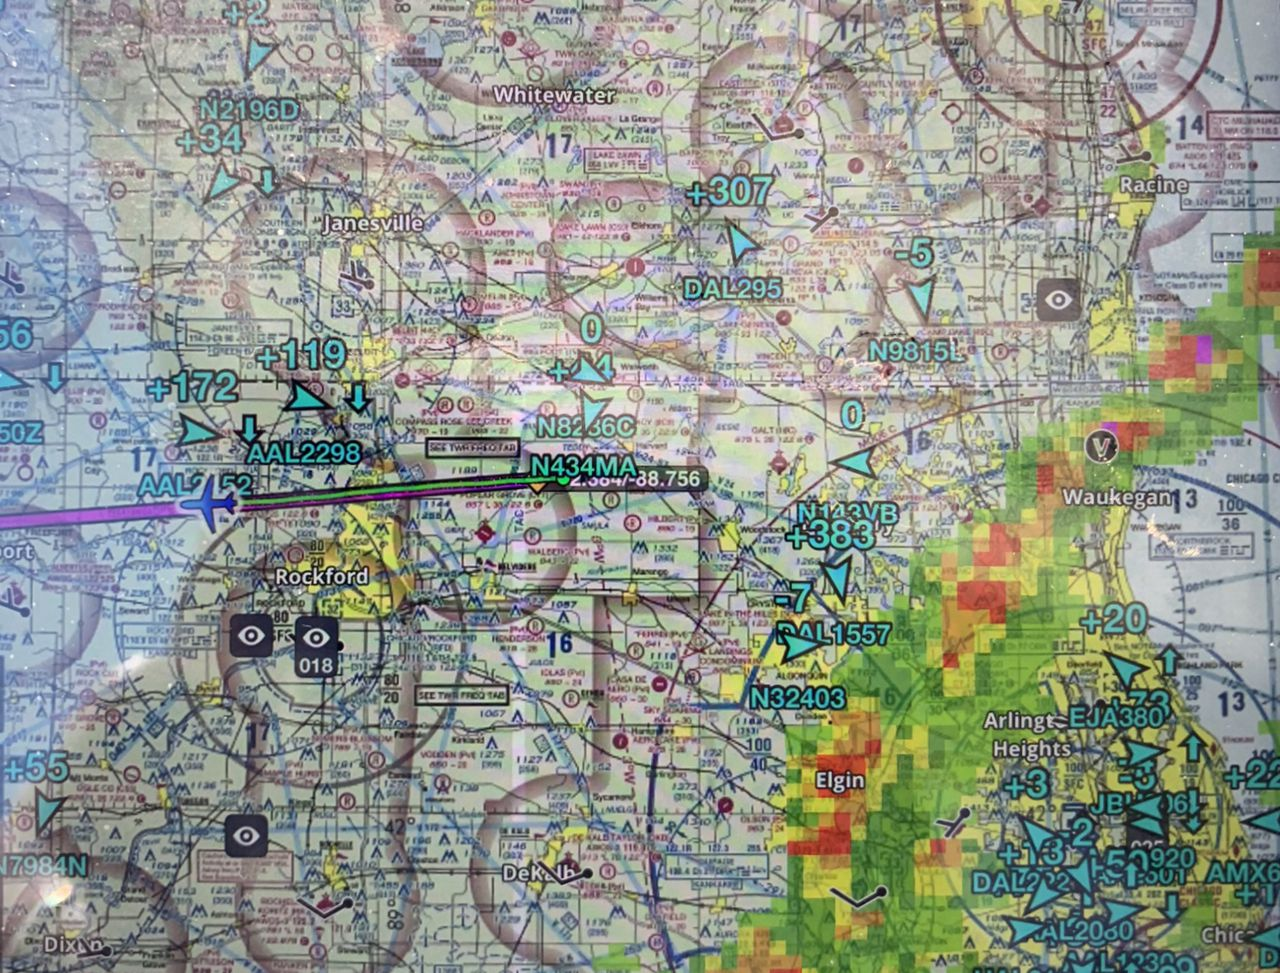 Foreflight Showing Front Over Ord recreational aerobatics